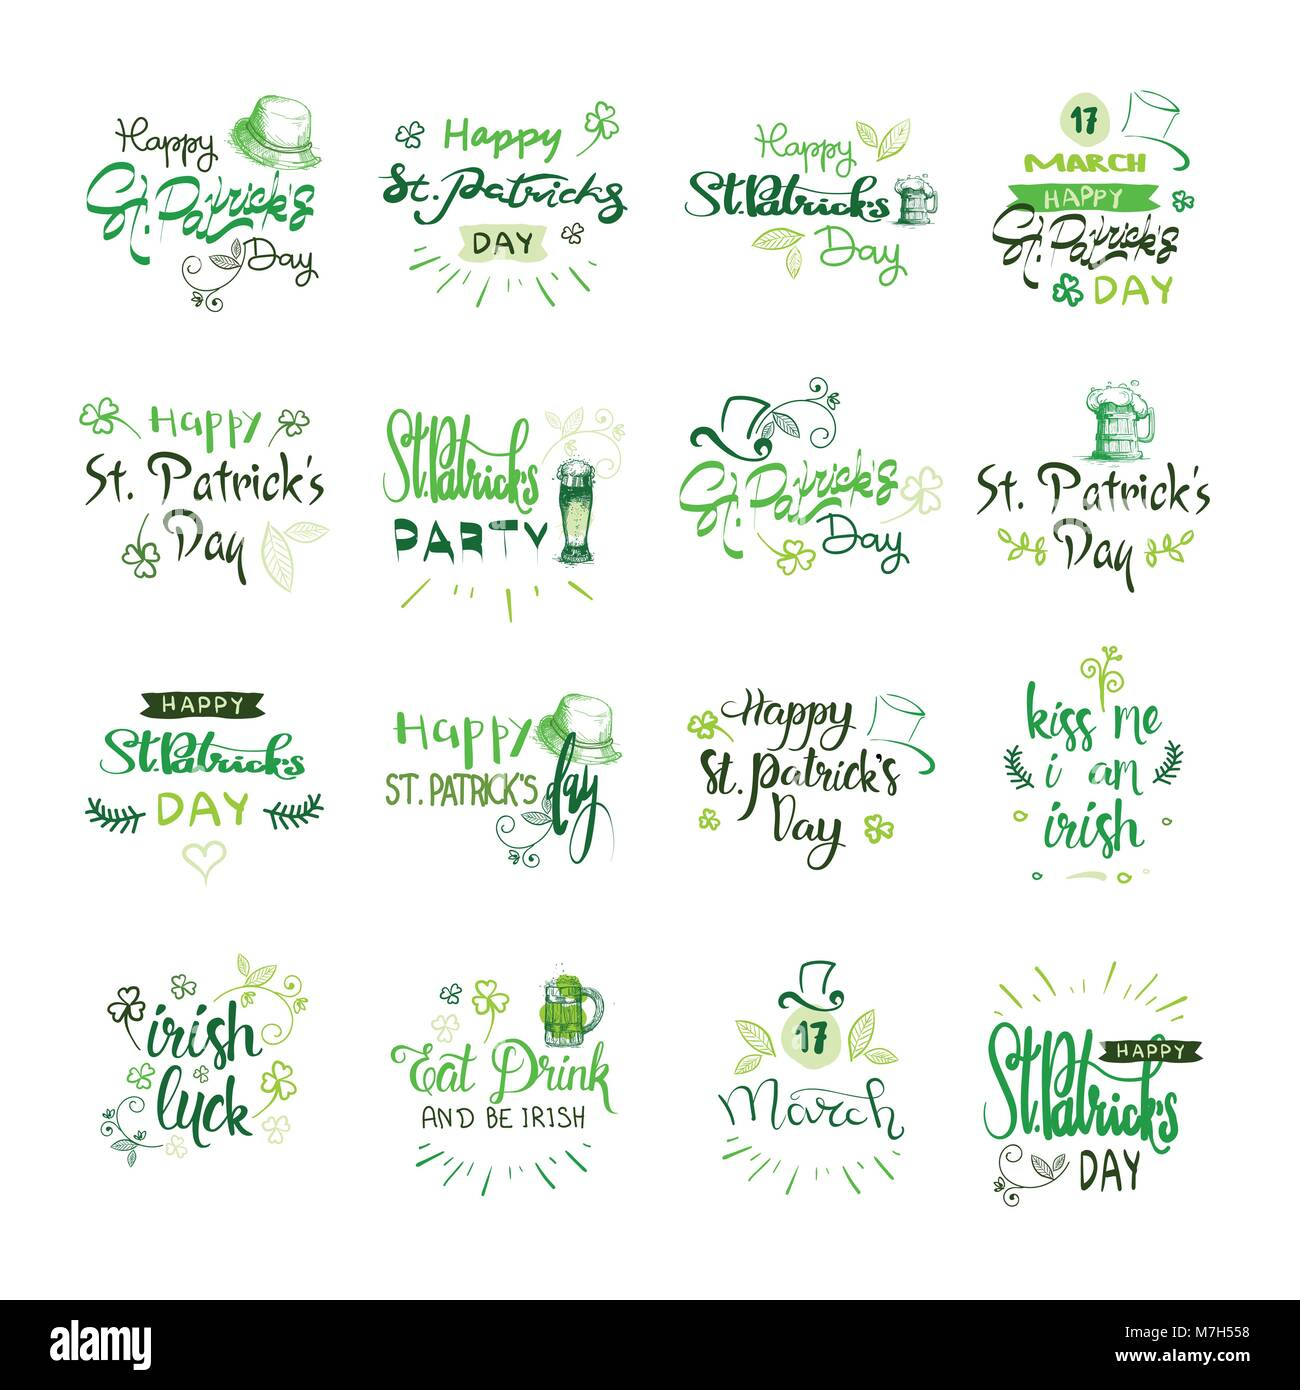 Happy Saint Patrick s Day Logotypes Set, Hand Sketch Irish Celebration Design, Lettering Typography Icons Collection - Stock Vector